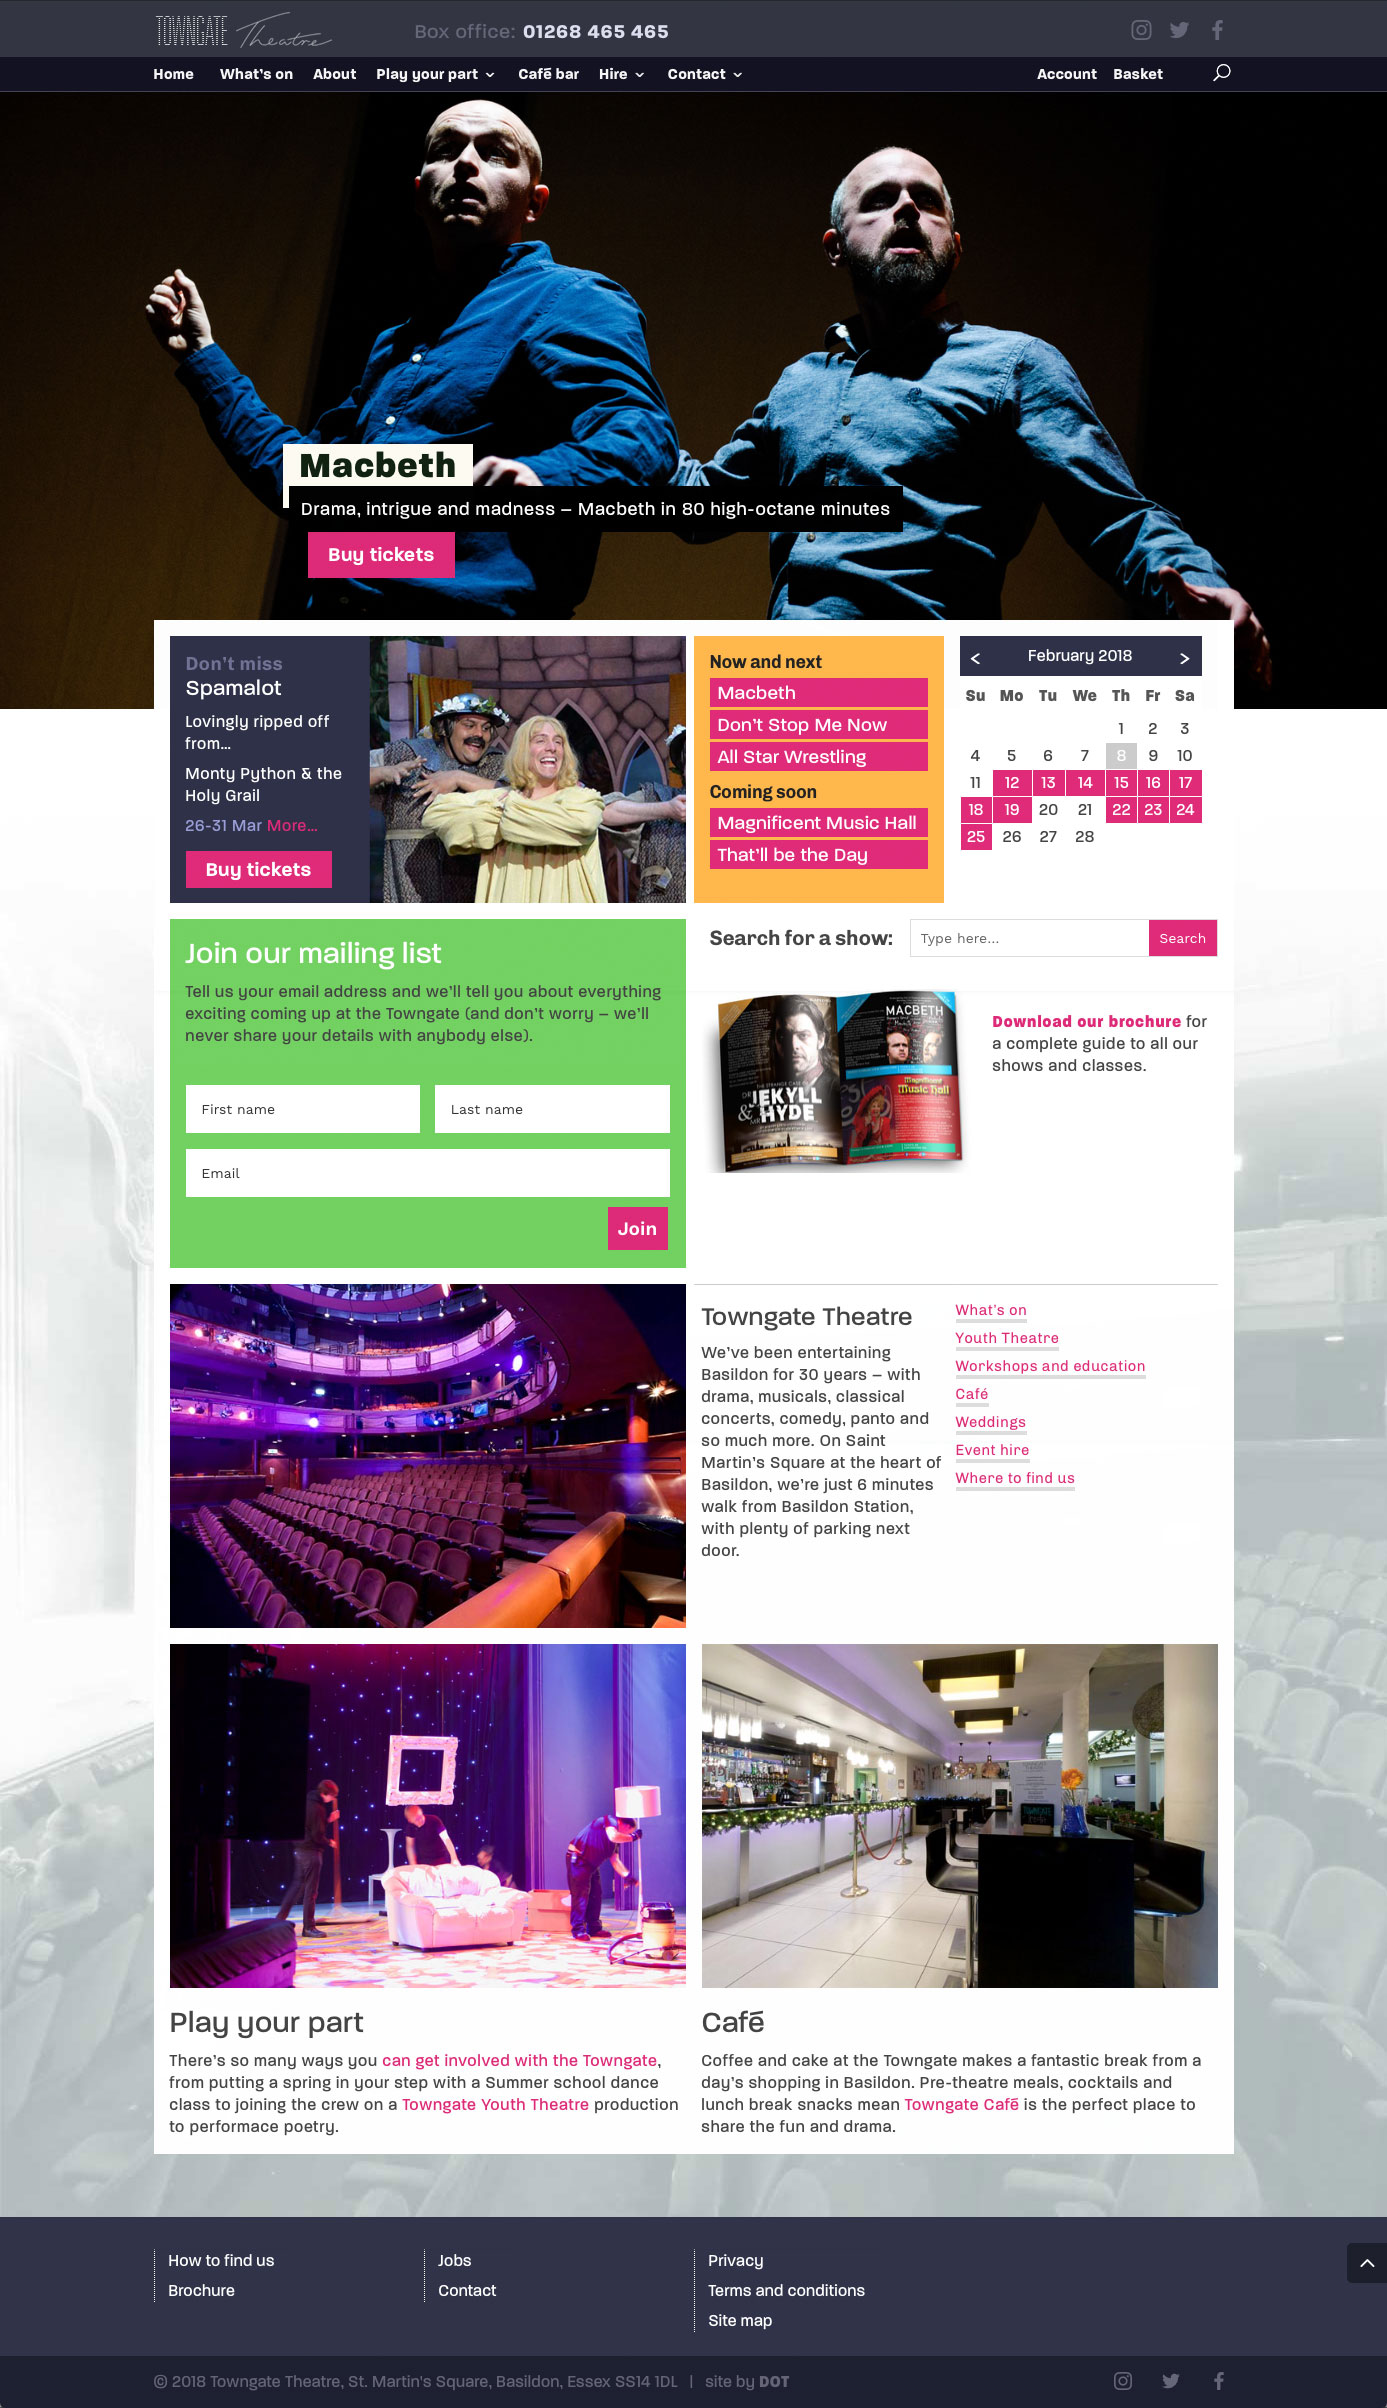 The new Towngate Theatre home page brings colour and excitement to the venue